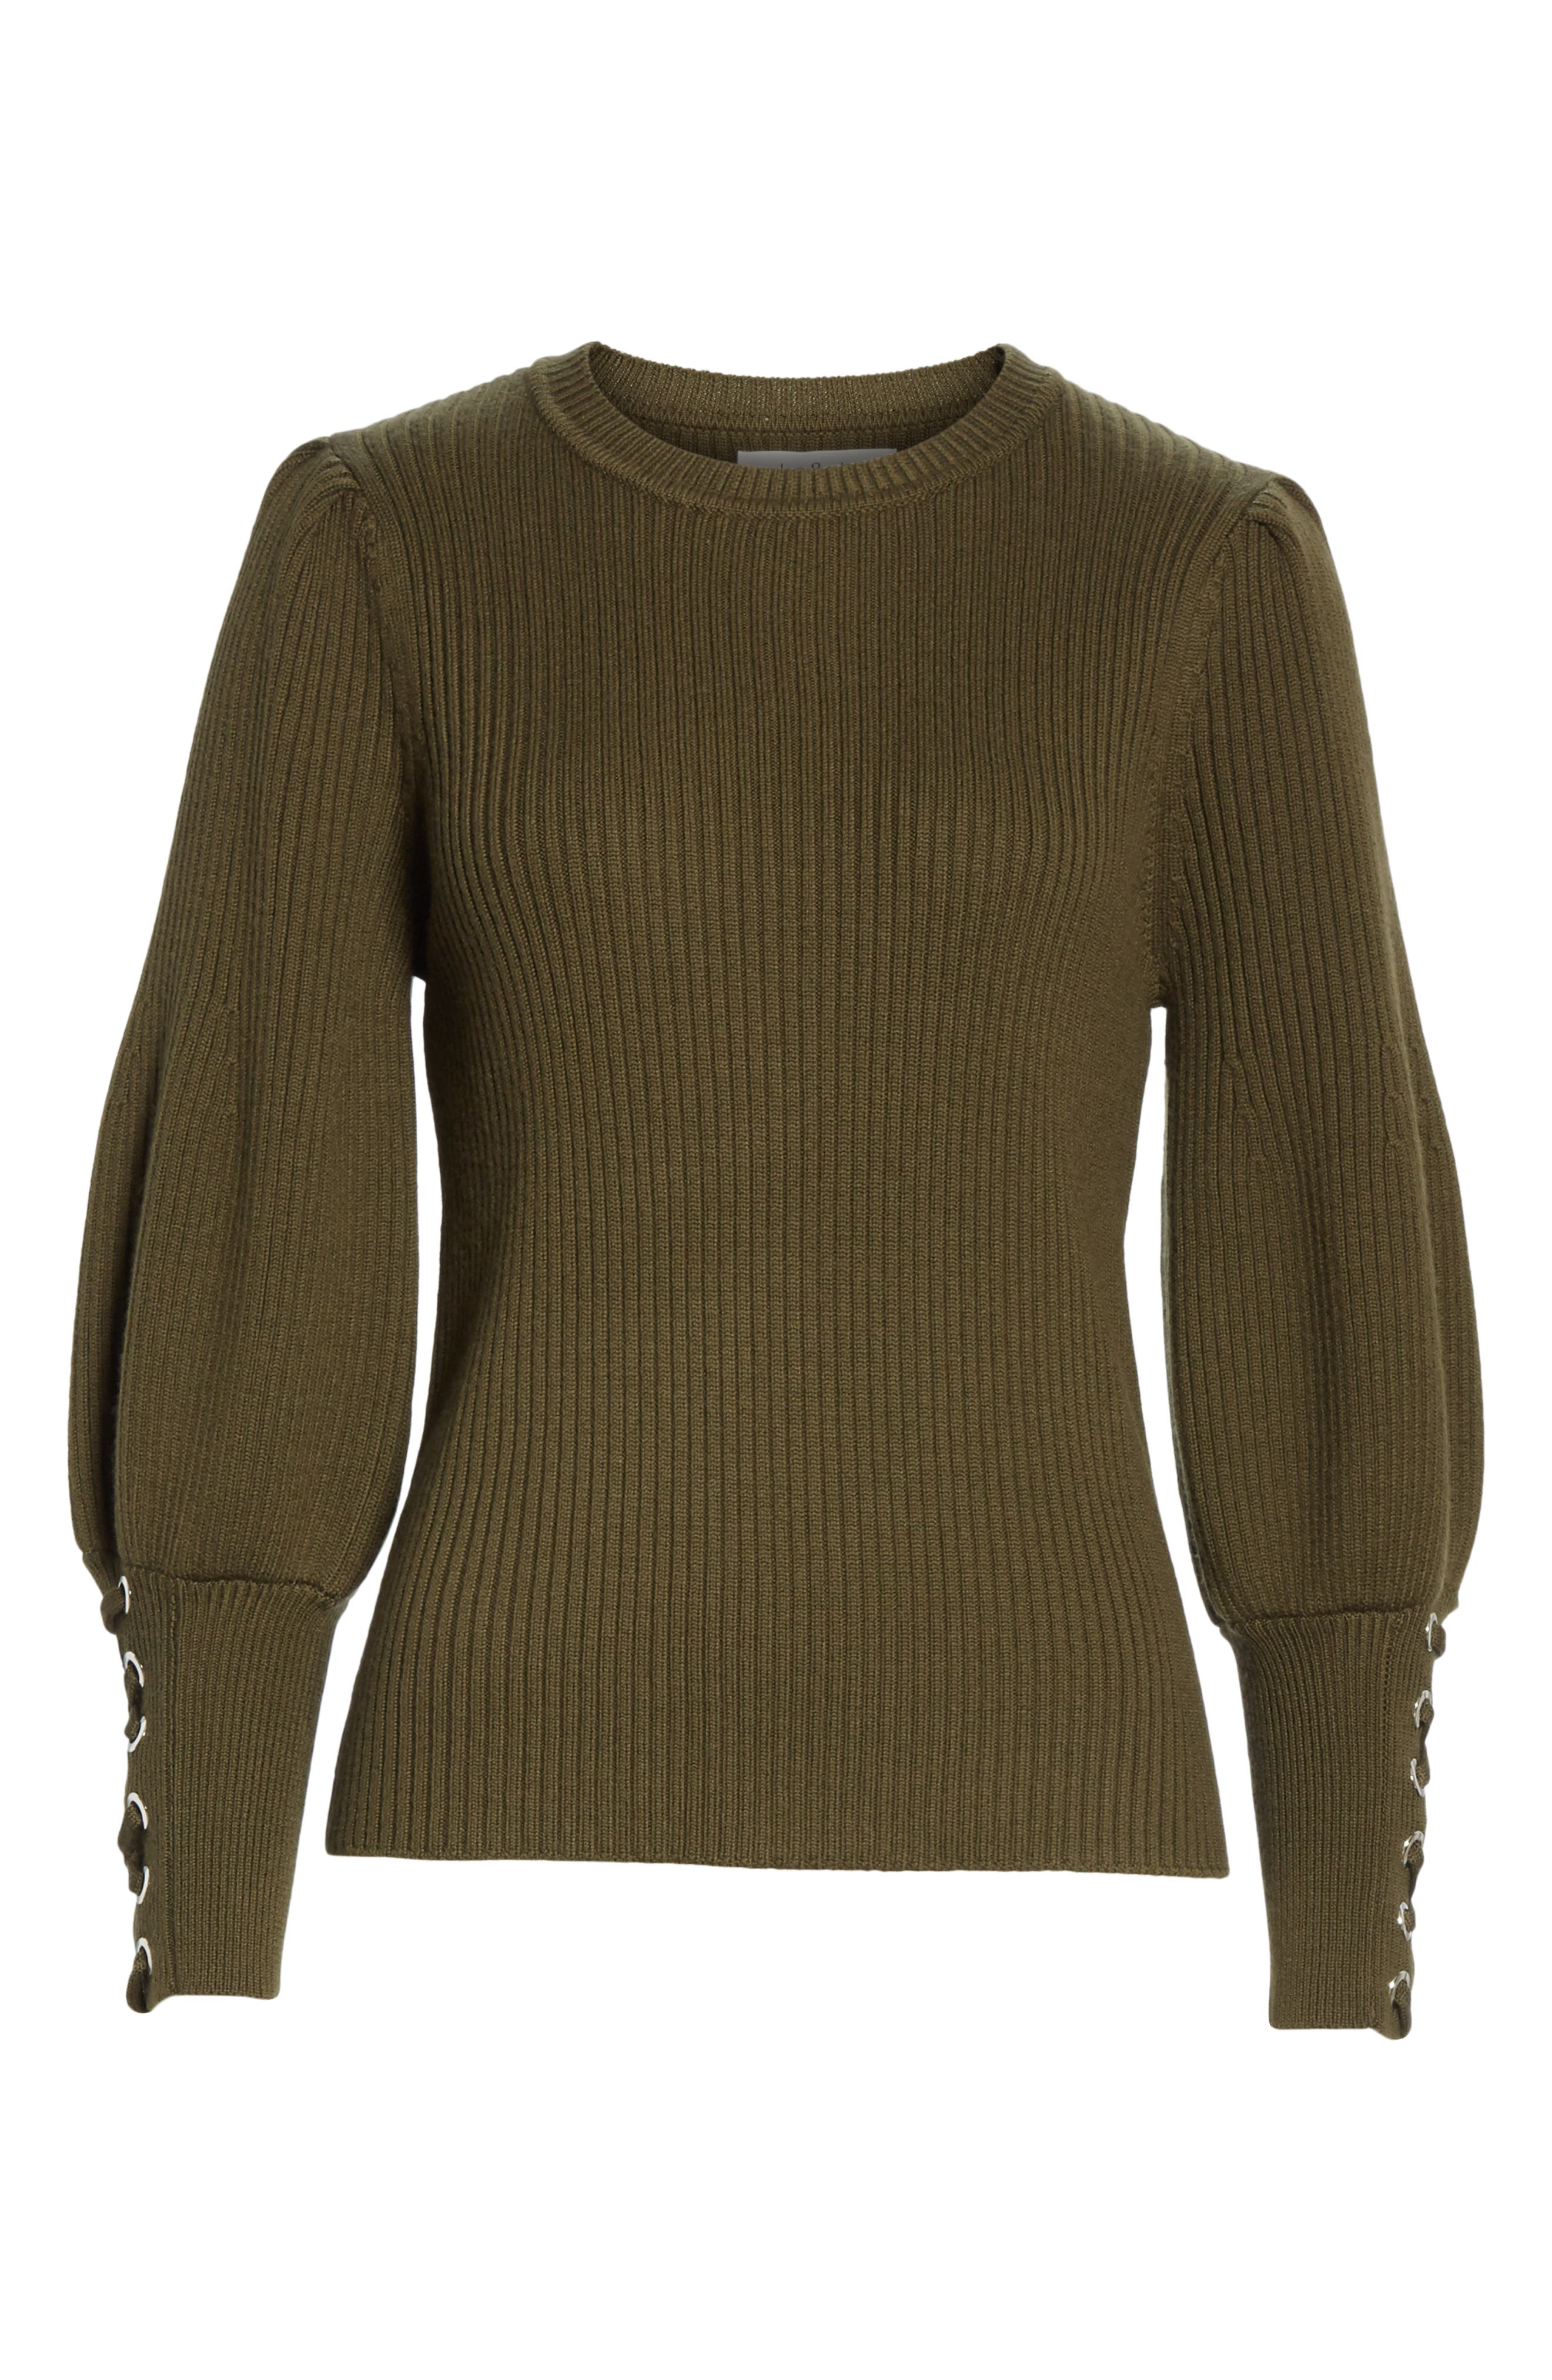 Zelie Lace-Up Cuff Wool Sweater,                             Alternate thumbnail 6, color,                             KAKI